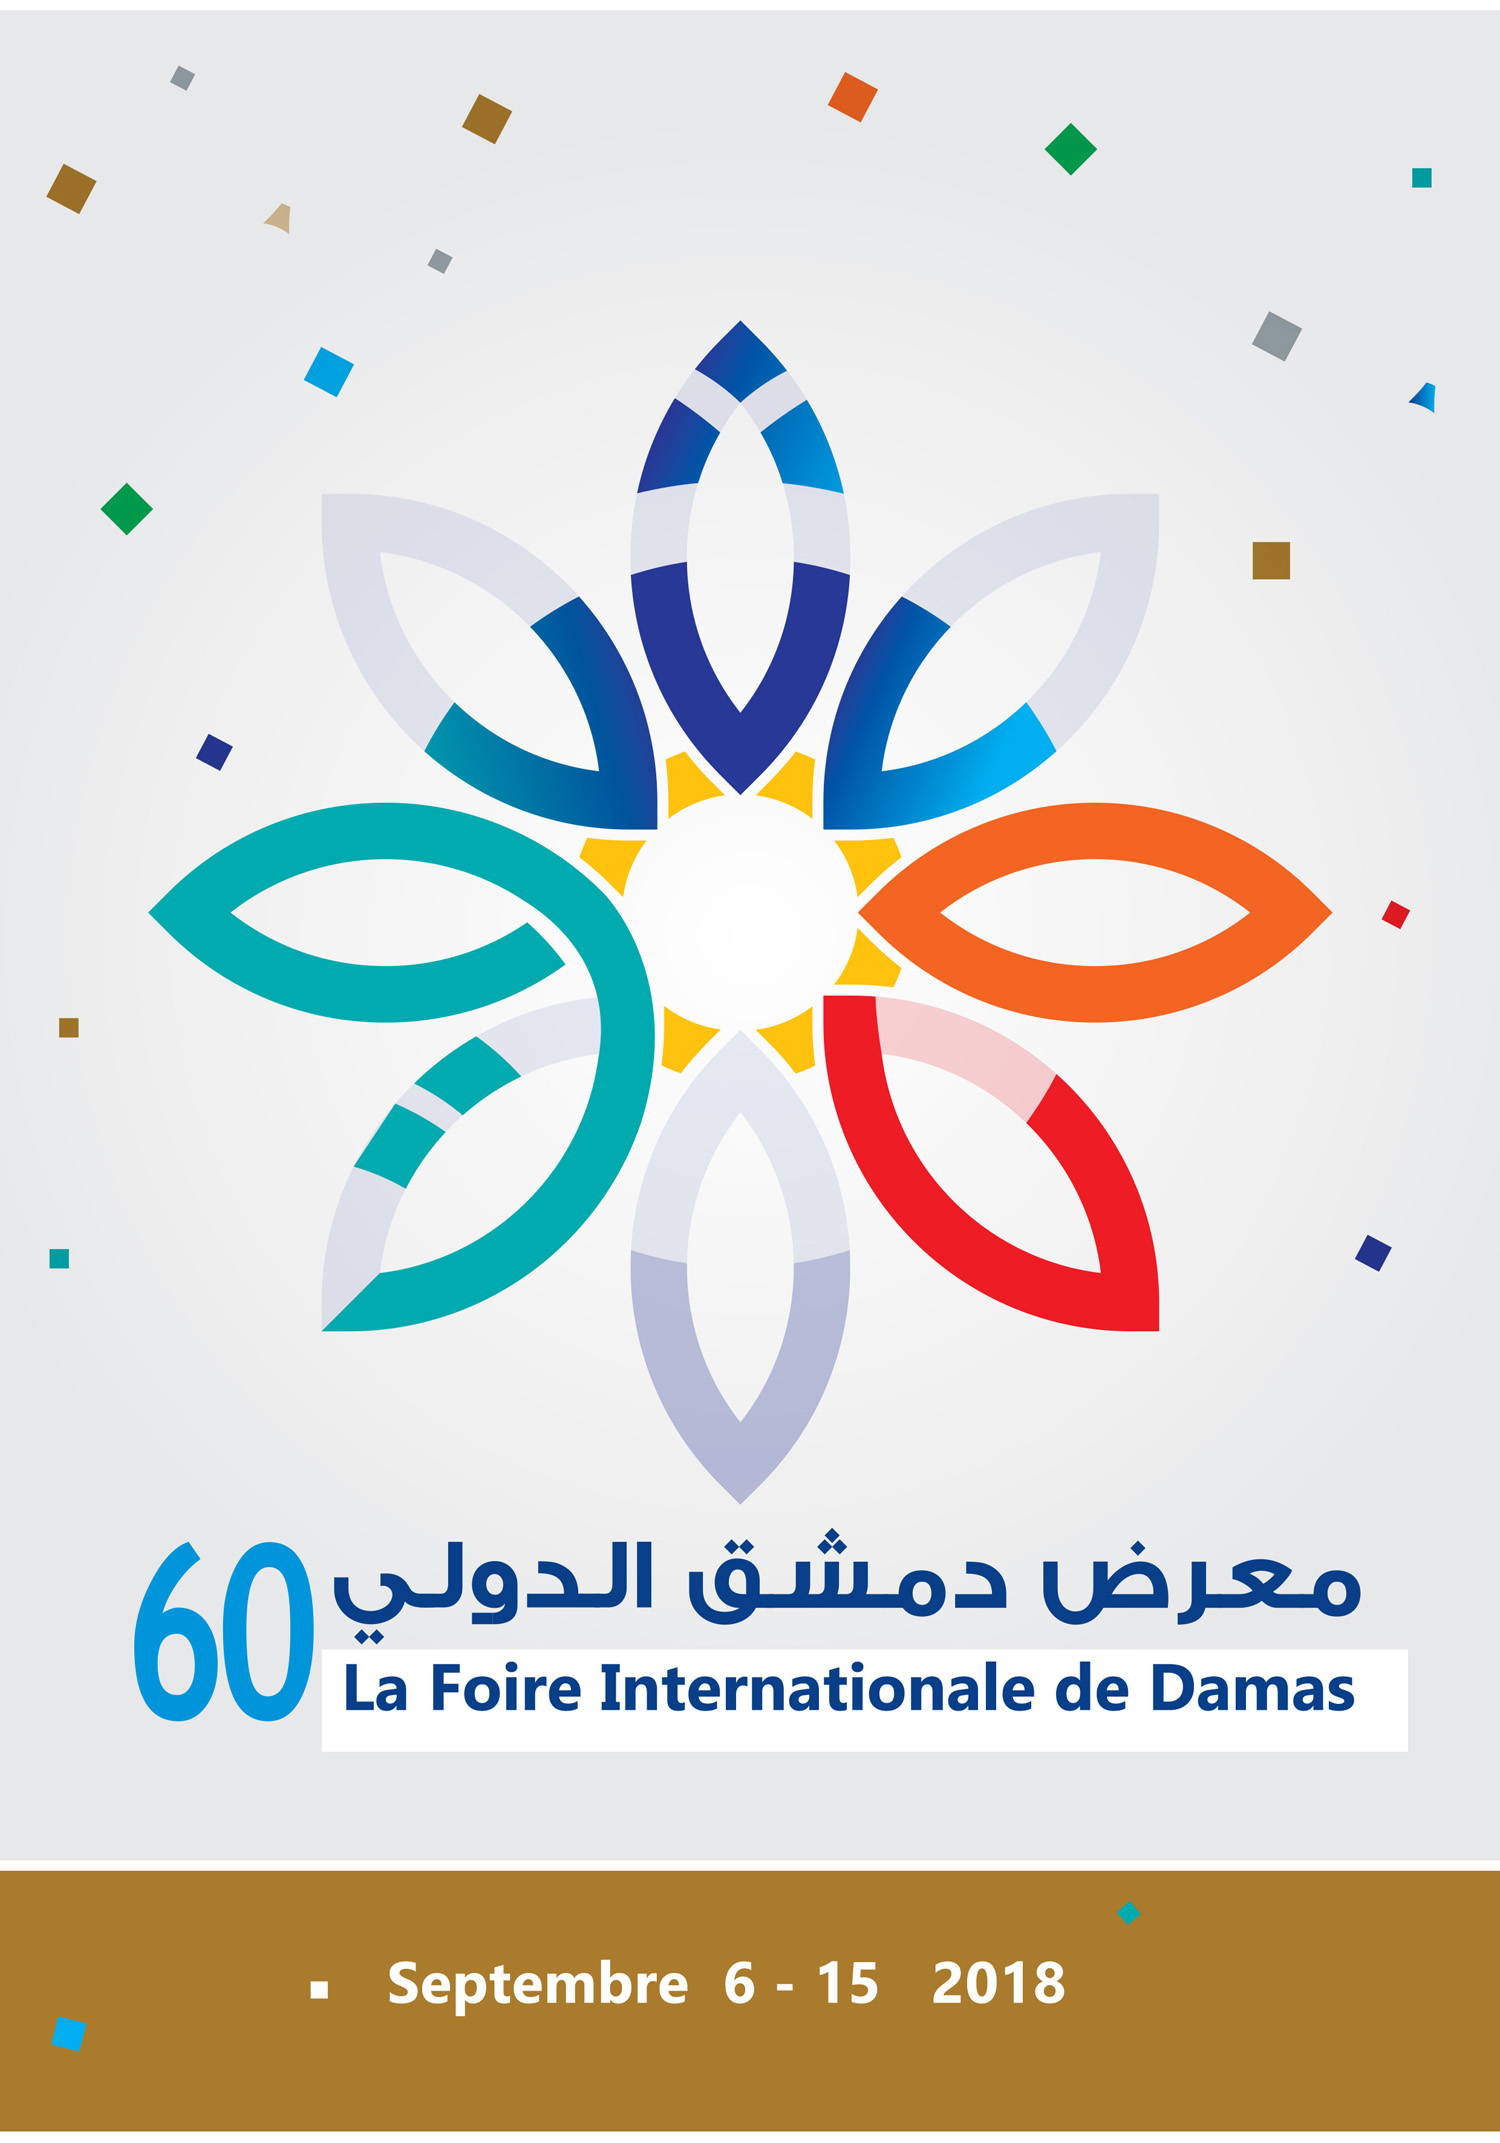 La Foire Internationale de Damas